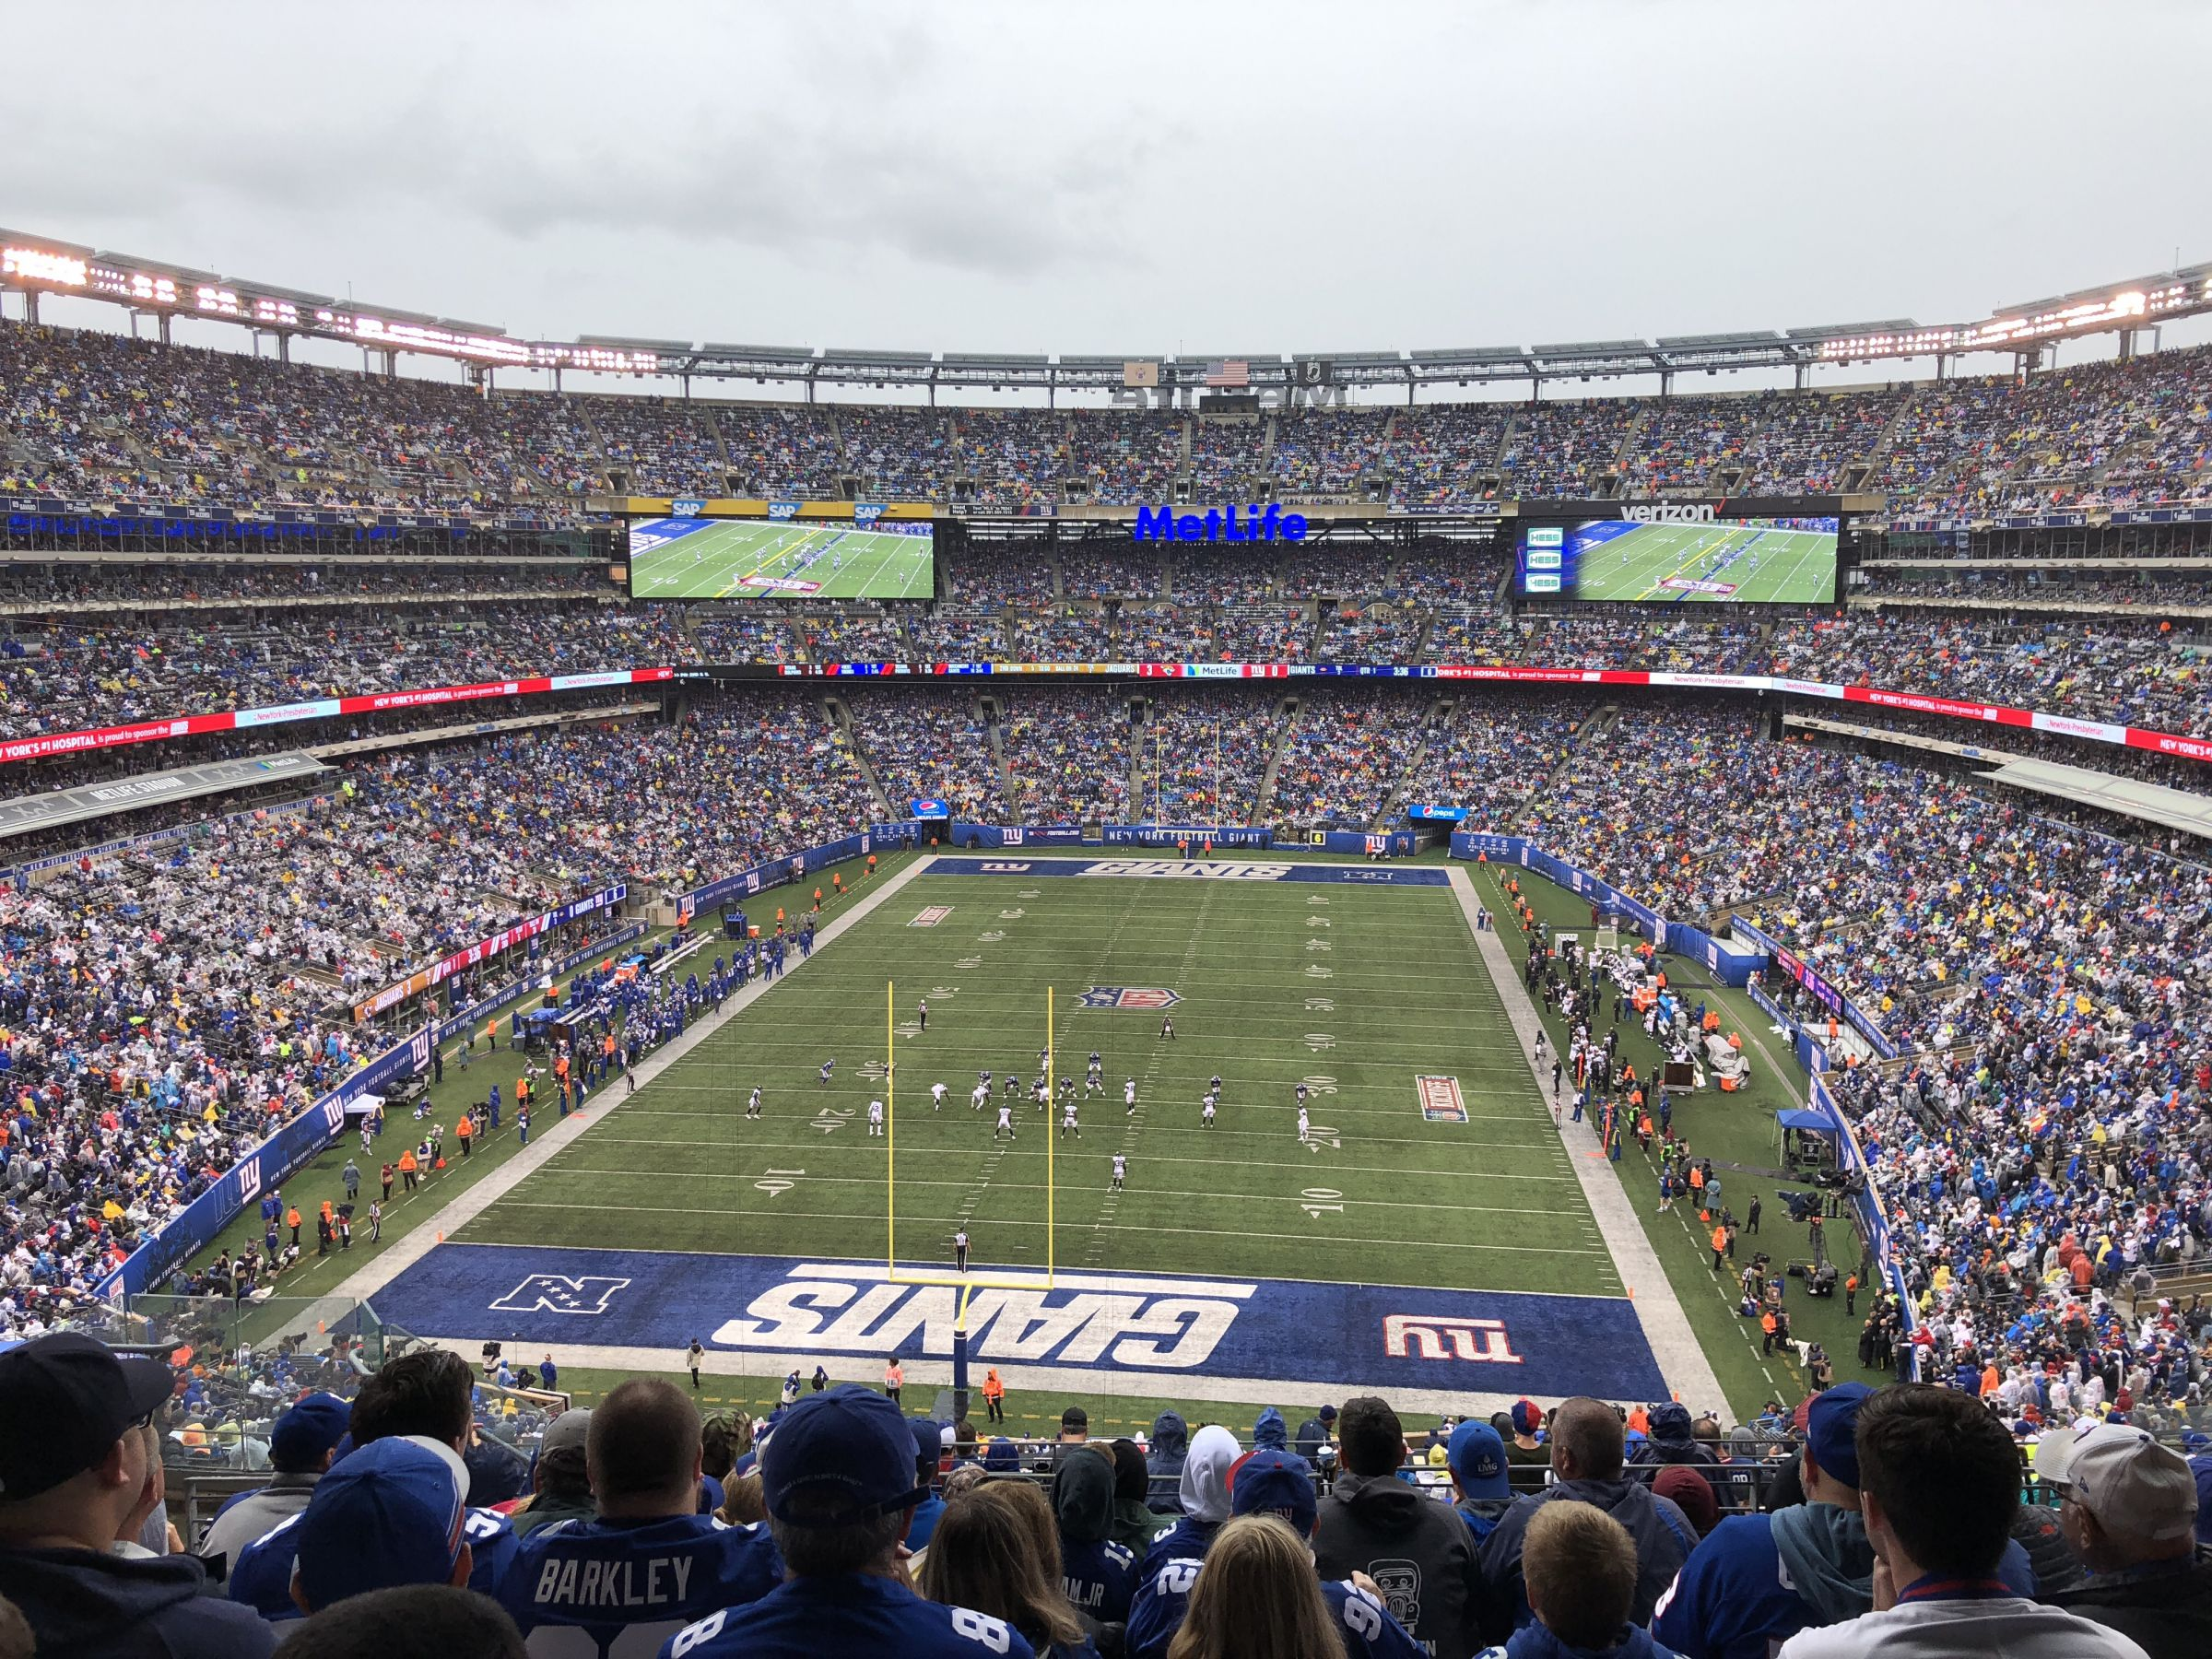 Section 250B seat view